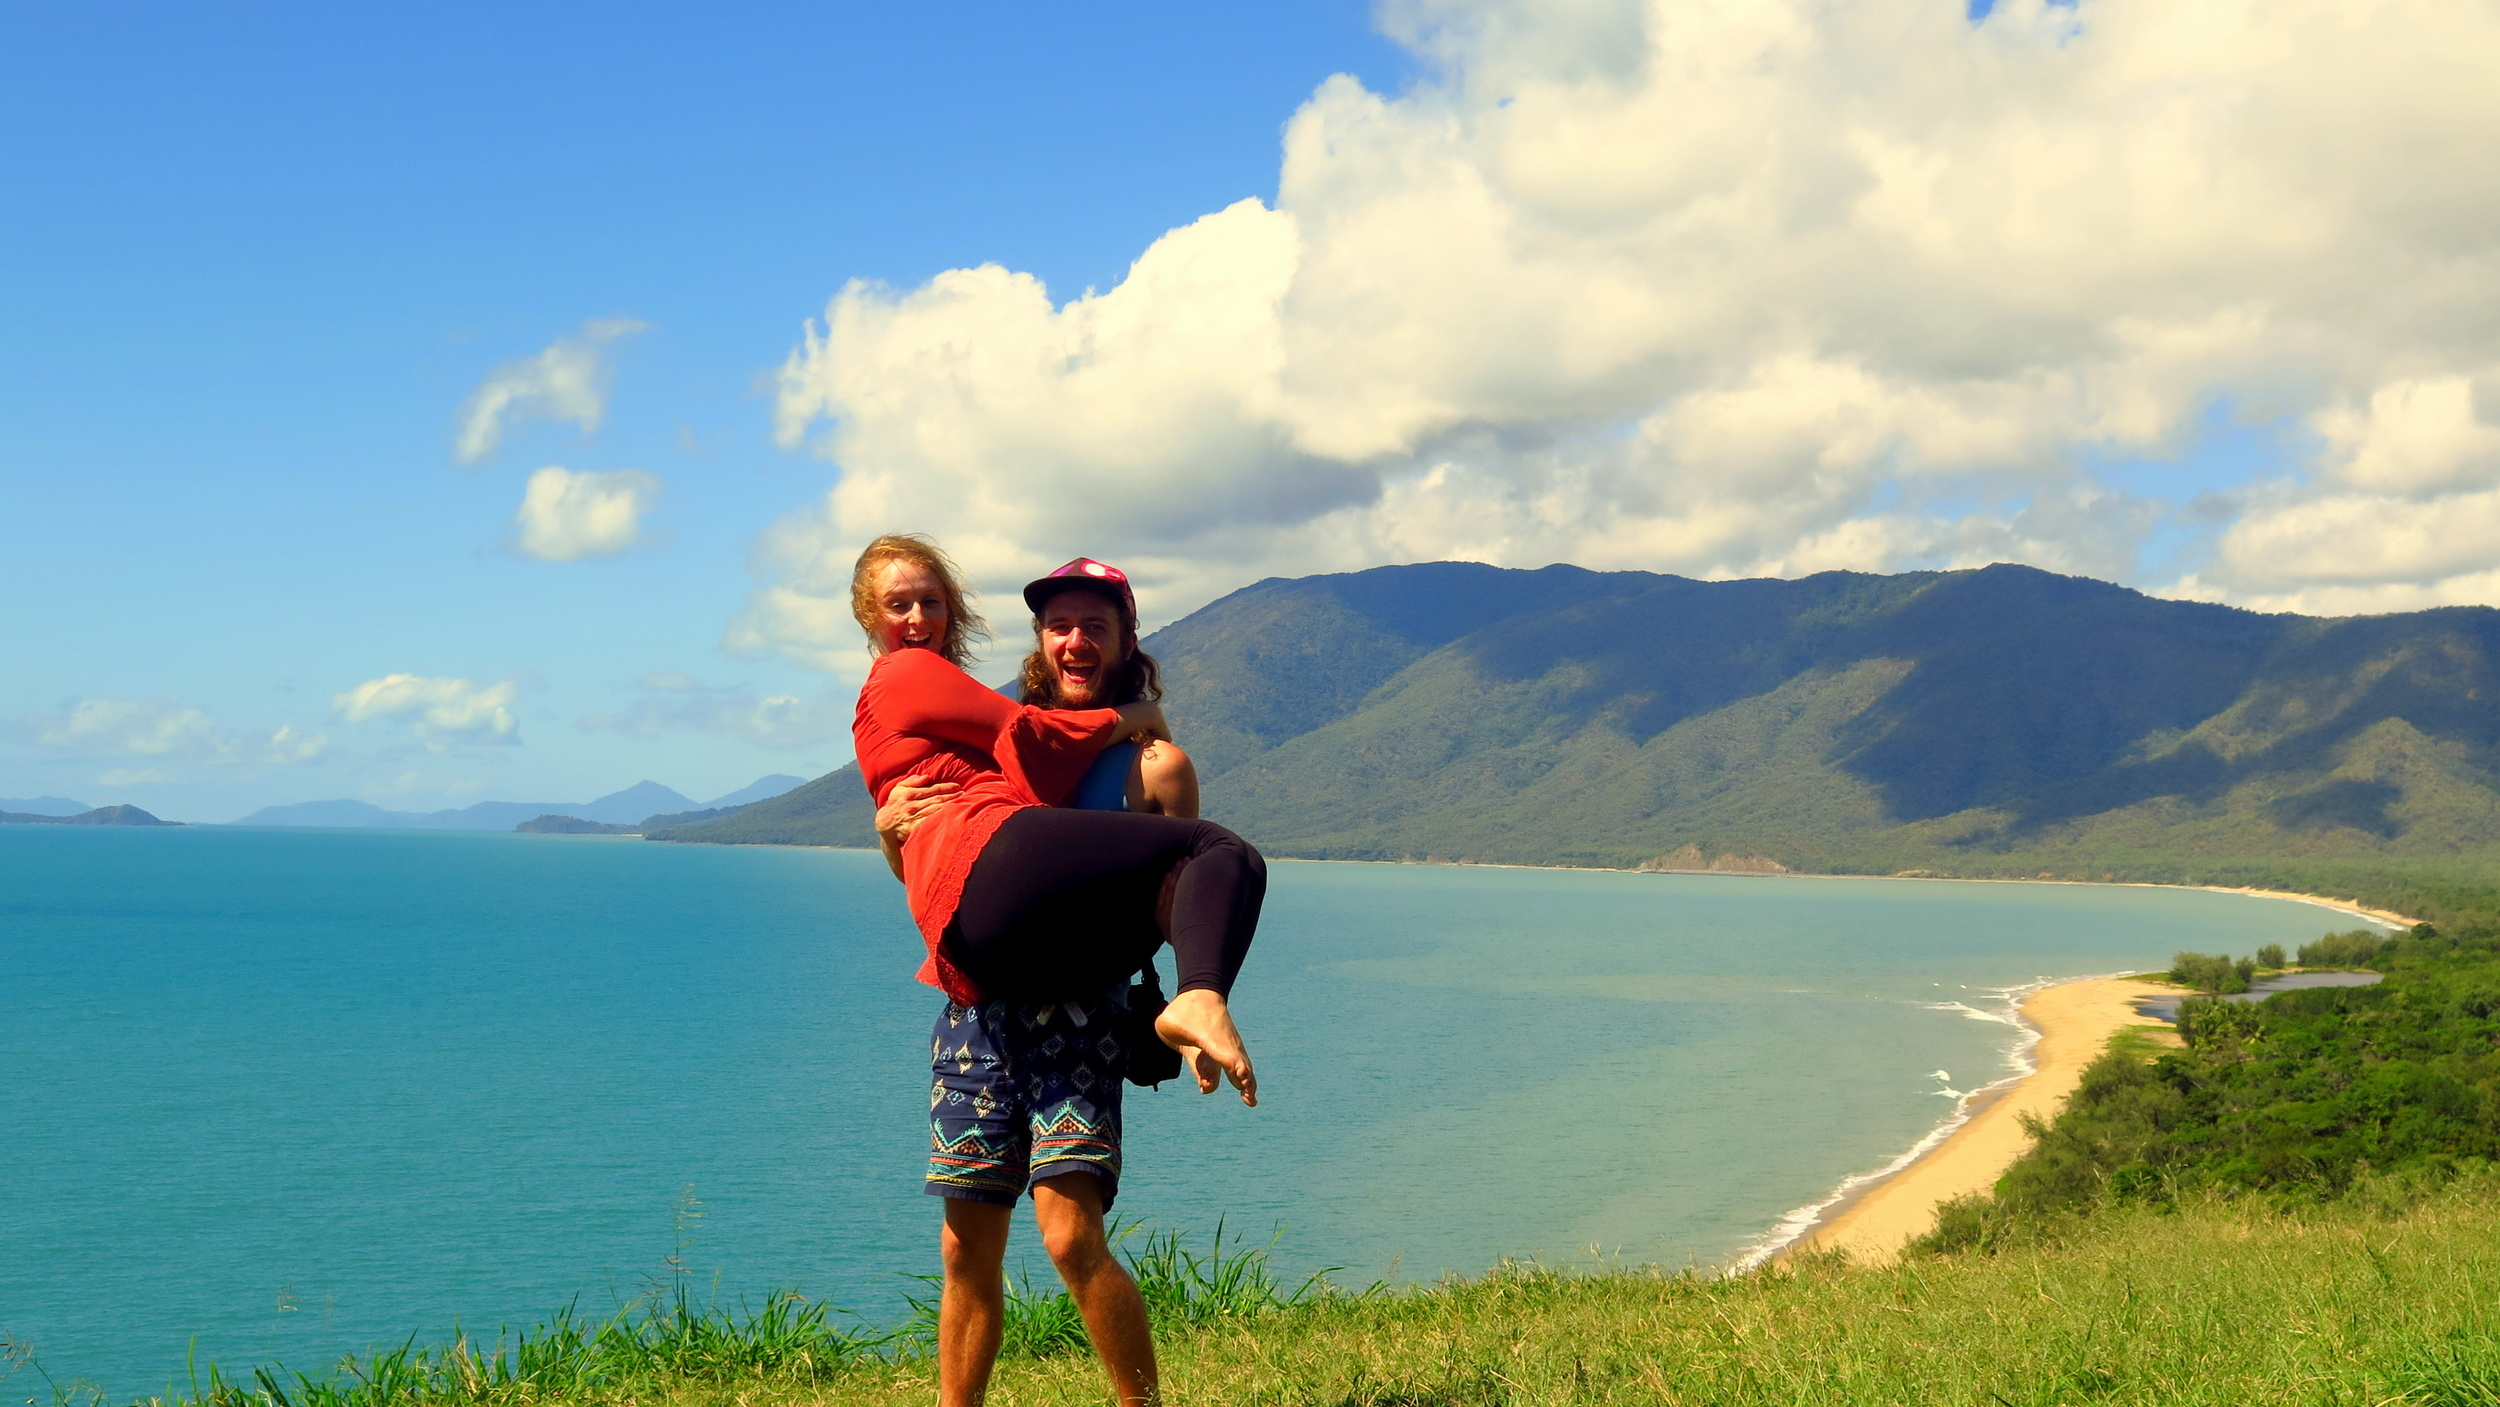 Stopping off to check out the view on the way to Port Douglas!